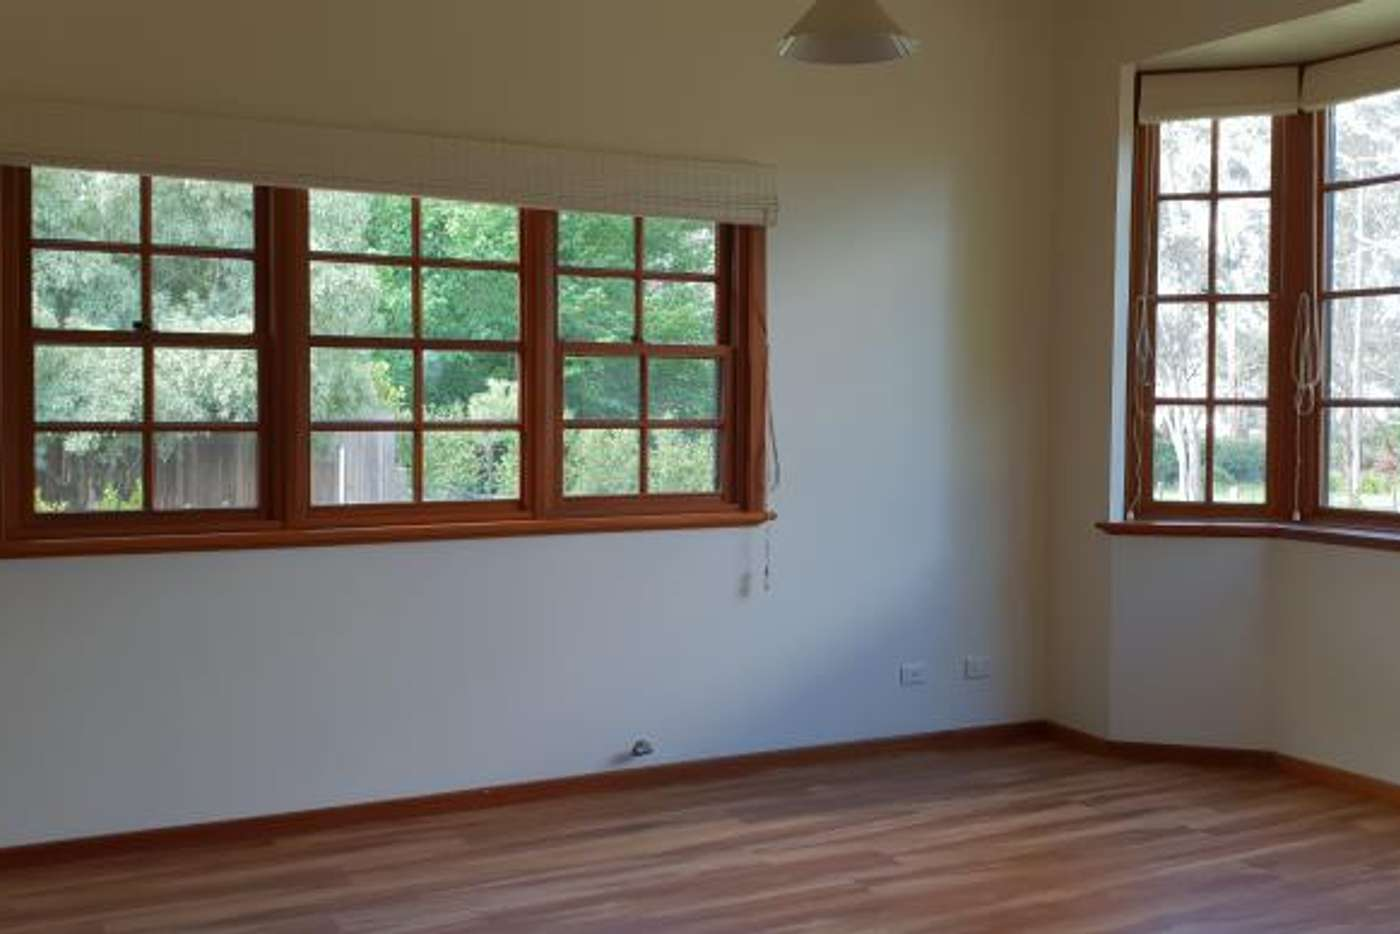 Sixth view of Homely house listing, 72 Bendooley Street, Bowral NSW 2576